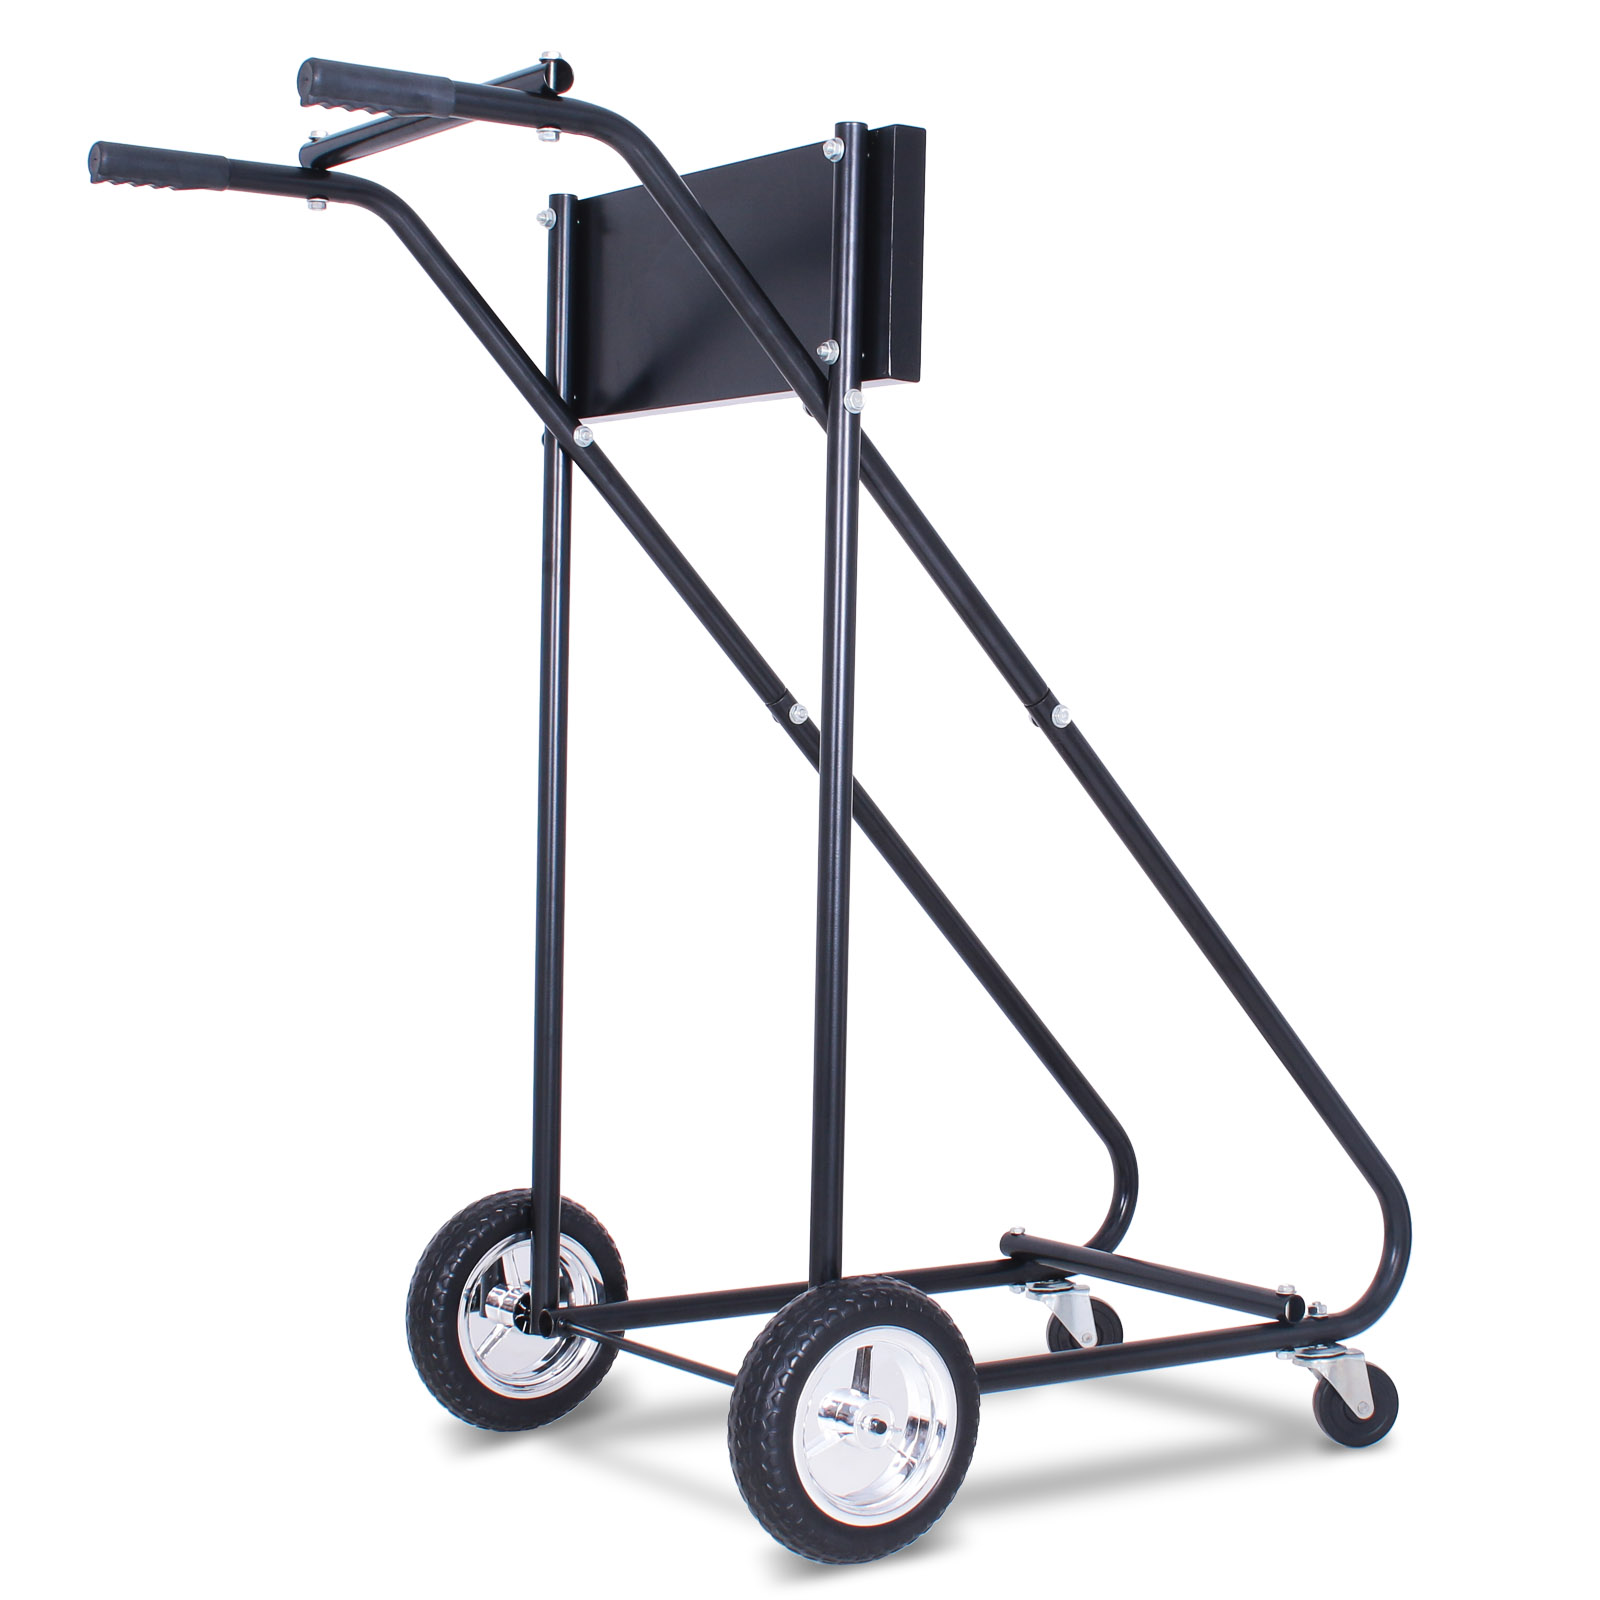 Outboard Motor Carrier : Lb outboard boat motor stand carrier cart dolly